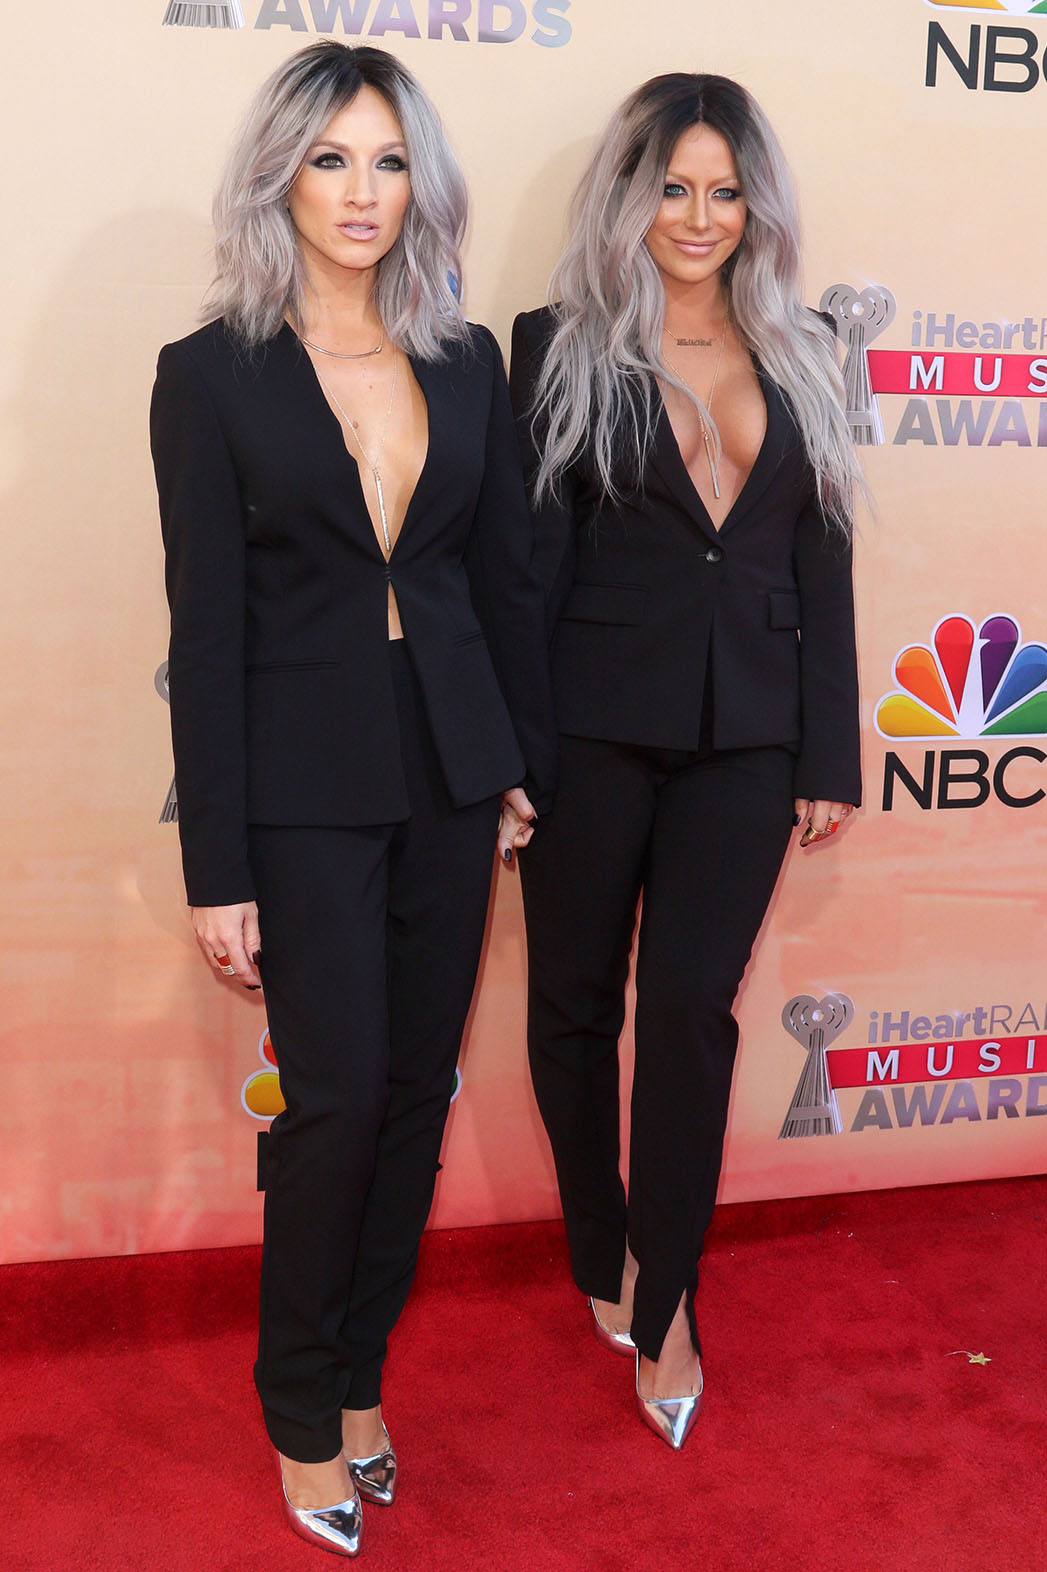 Grey Hair iHeartRadio Awards - P 2015